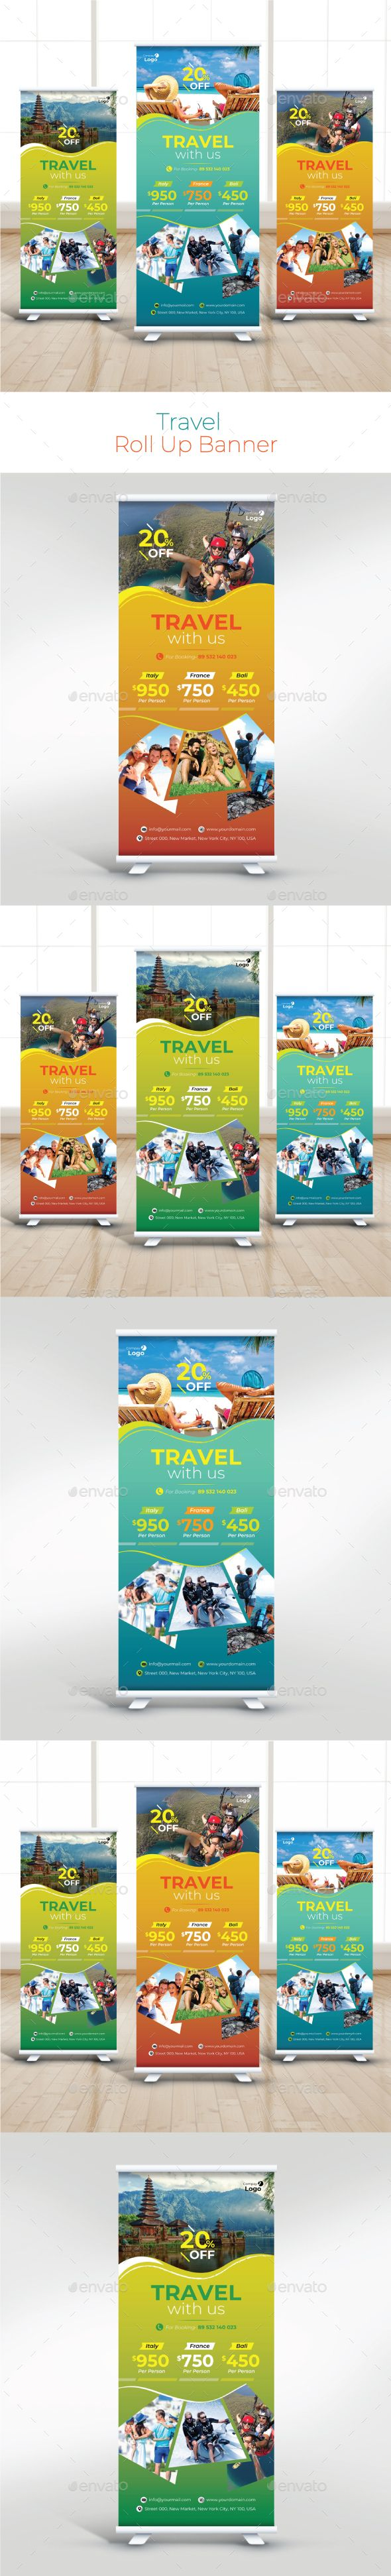 Travel Roll Up Banner | Ai illustrator, Banner template and Banners